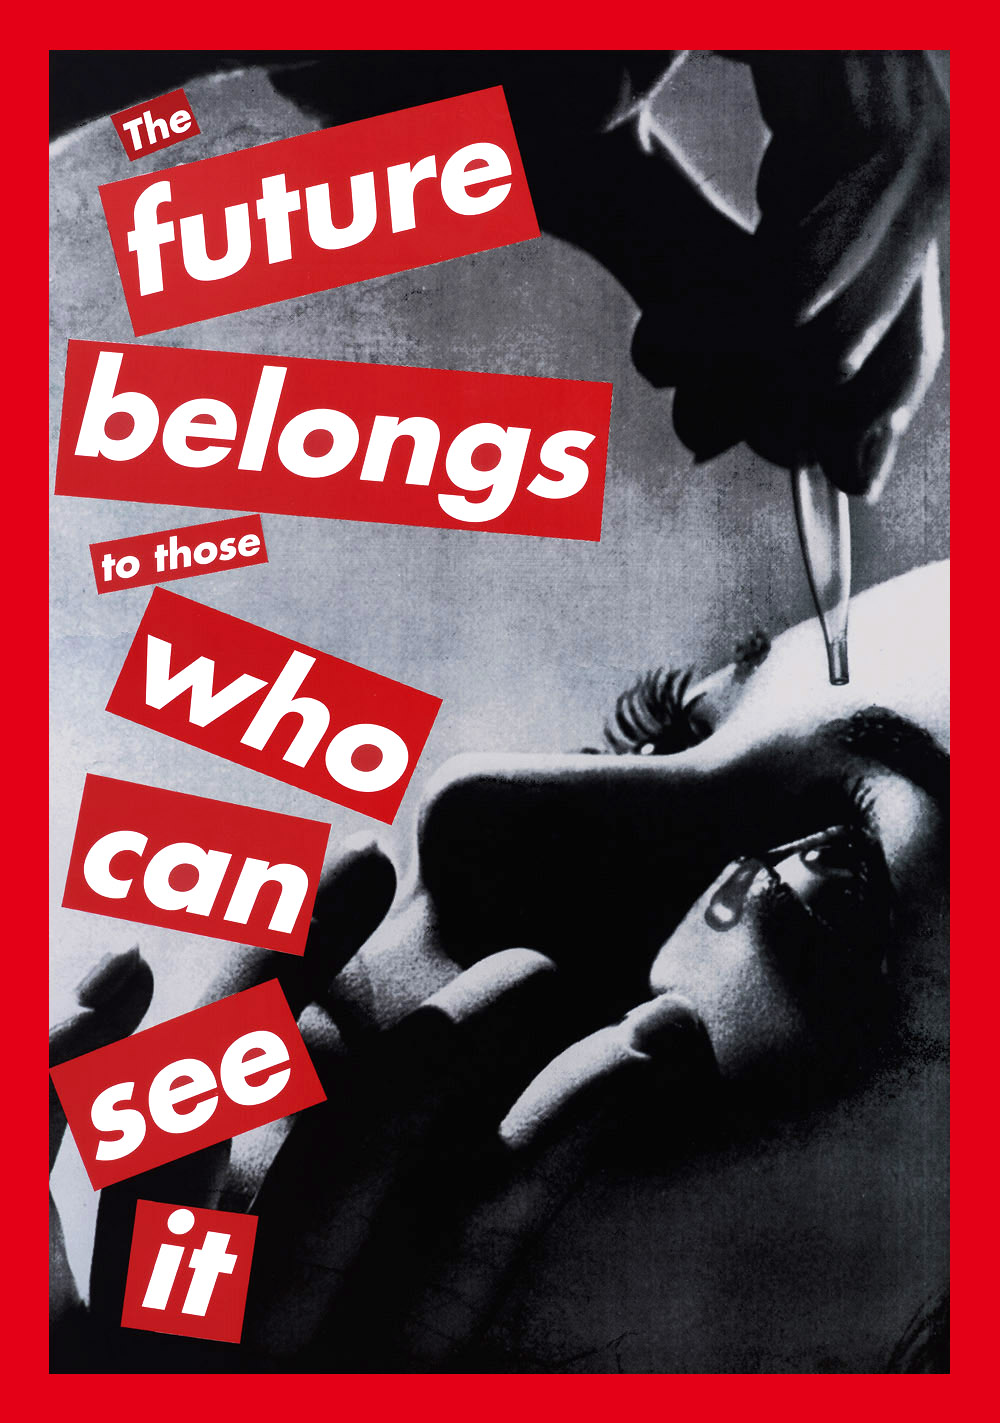 barbara kruger Barbara kruger's body of work is politically charged and poignant, with the former half of her career involving many works with feminist overtones through the.